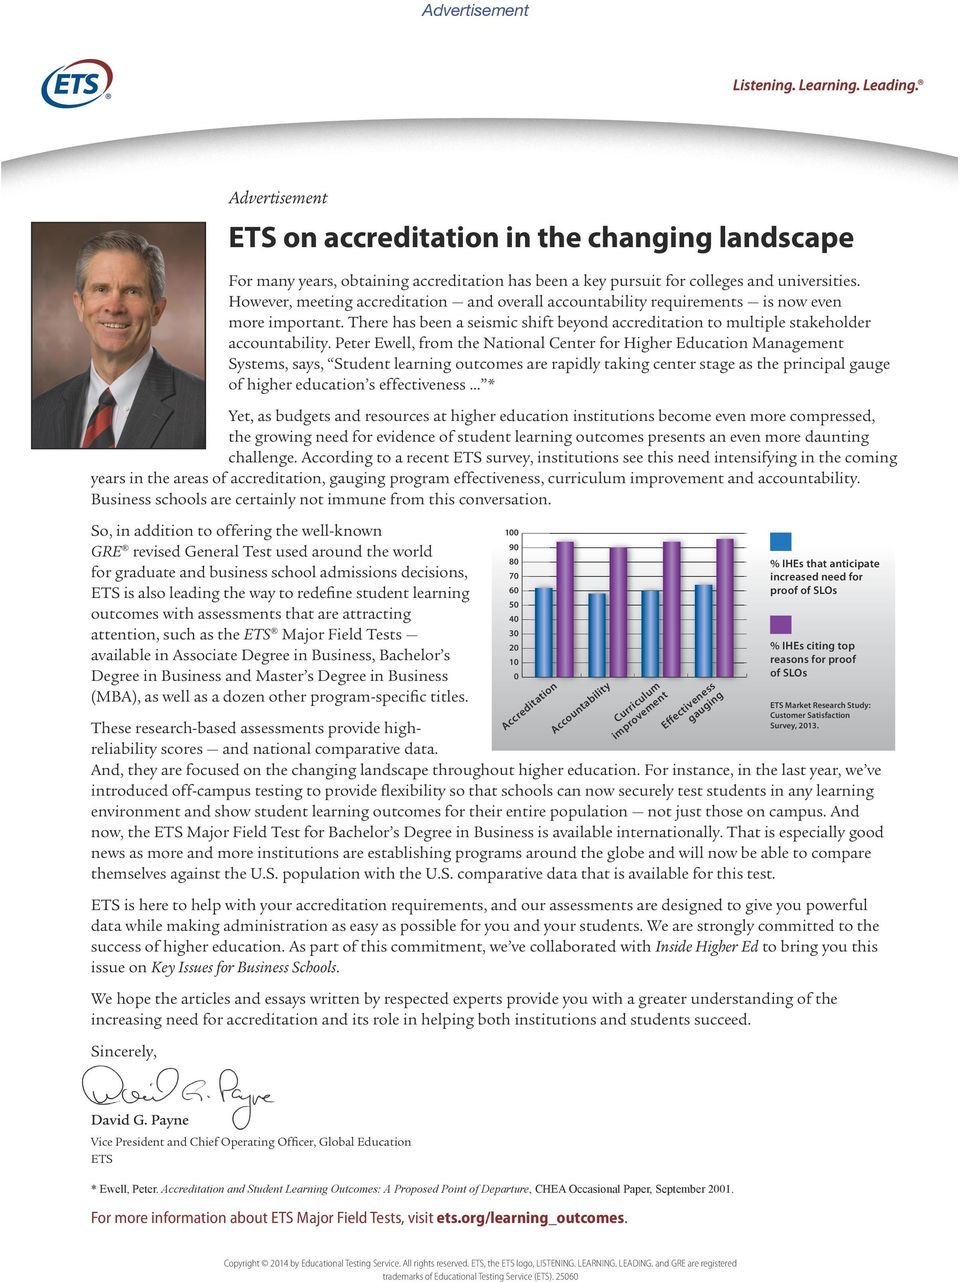 Peter Ewell, from the National Center for Higher Education Management Systems, says, Student learning outcomes are rapidly taking center stage as the principal gauge of higher education s